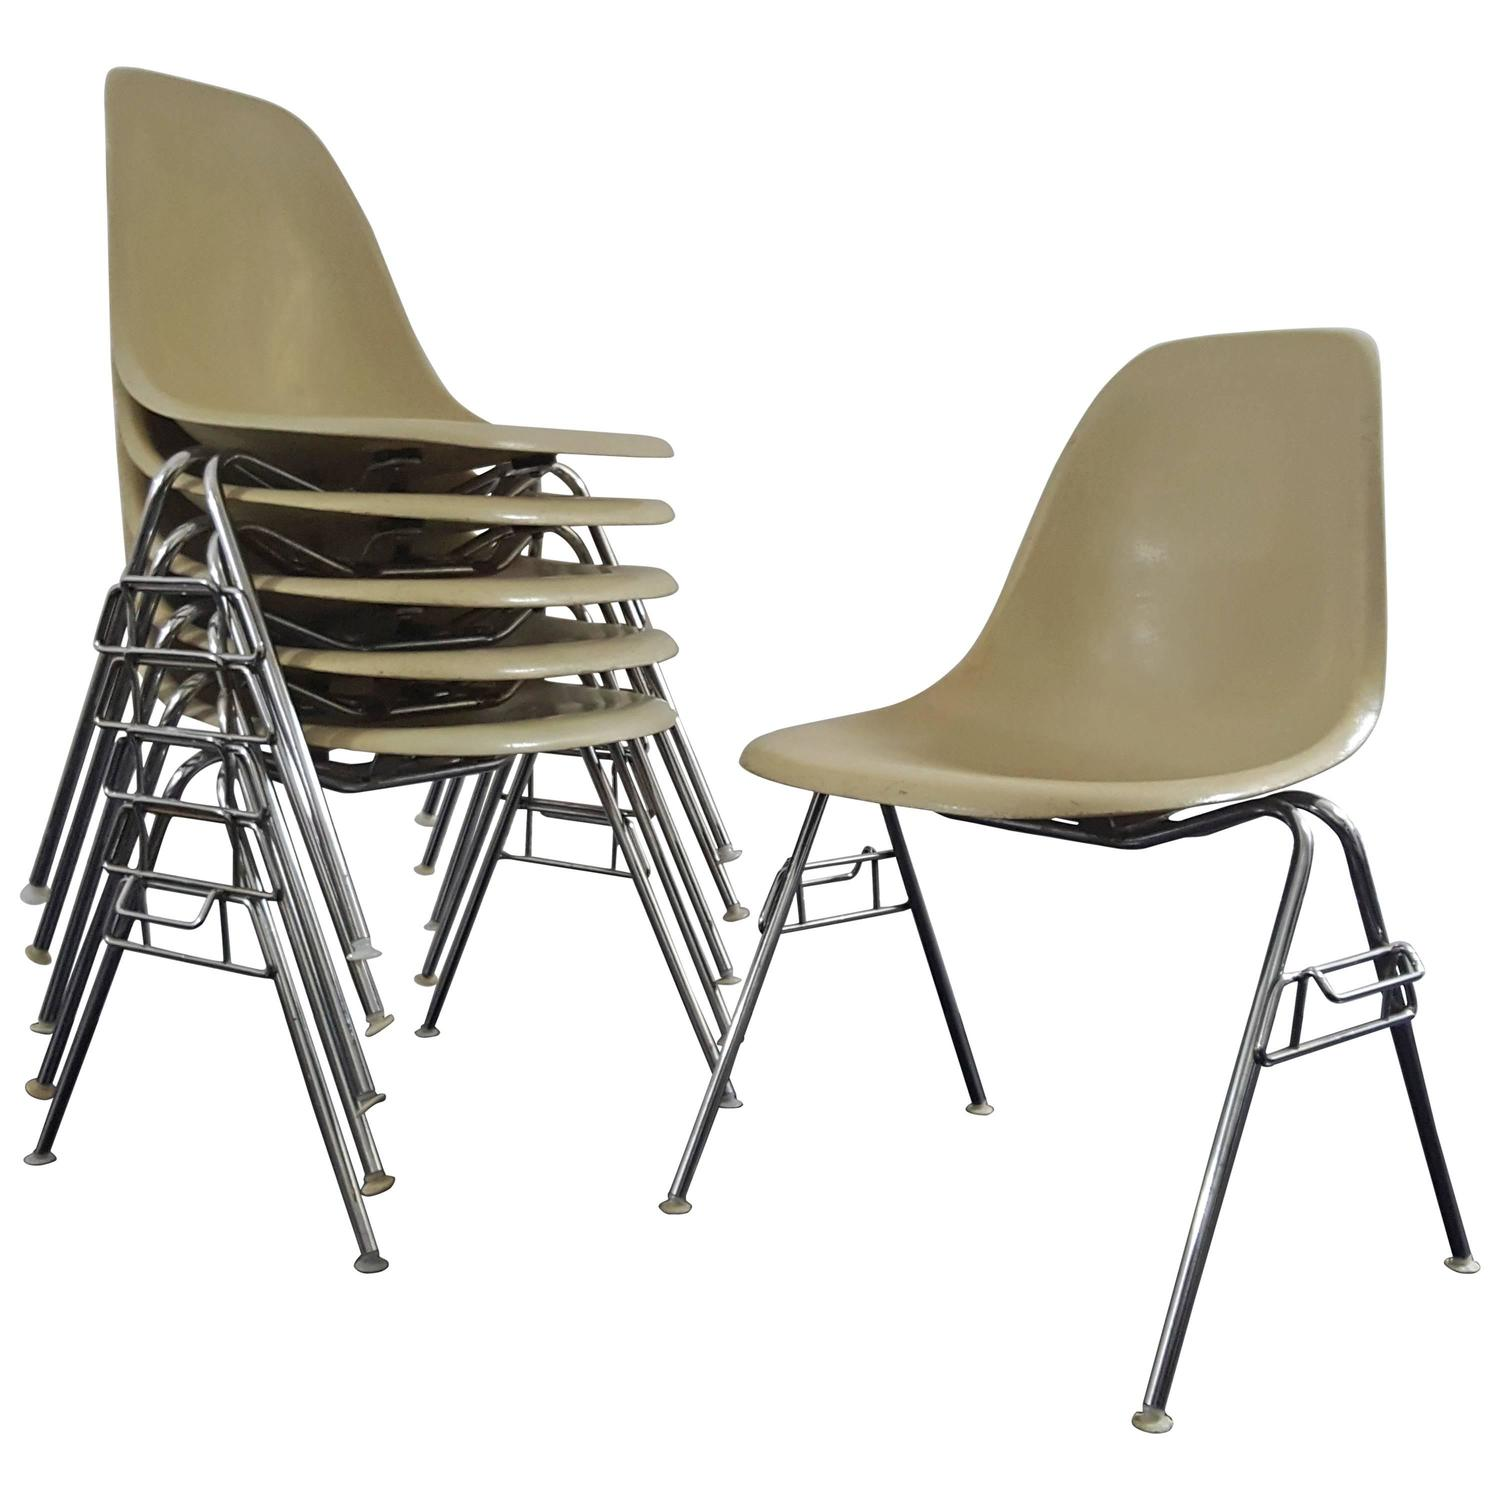 original vintage charles and ray eames dss stacking chairs for herman miller for sale at 1stdibs. Black Bedroom Furniture Sets. Home Design Ideas